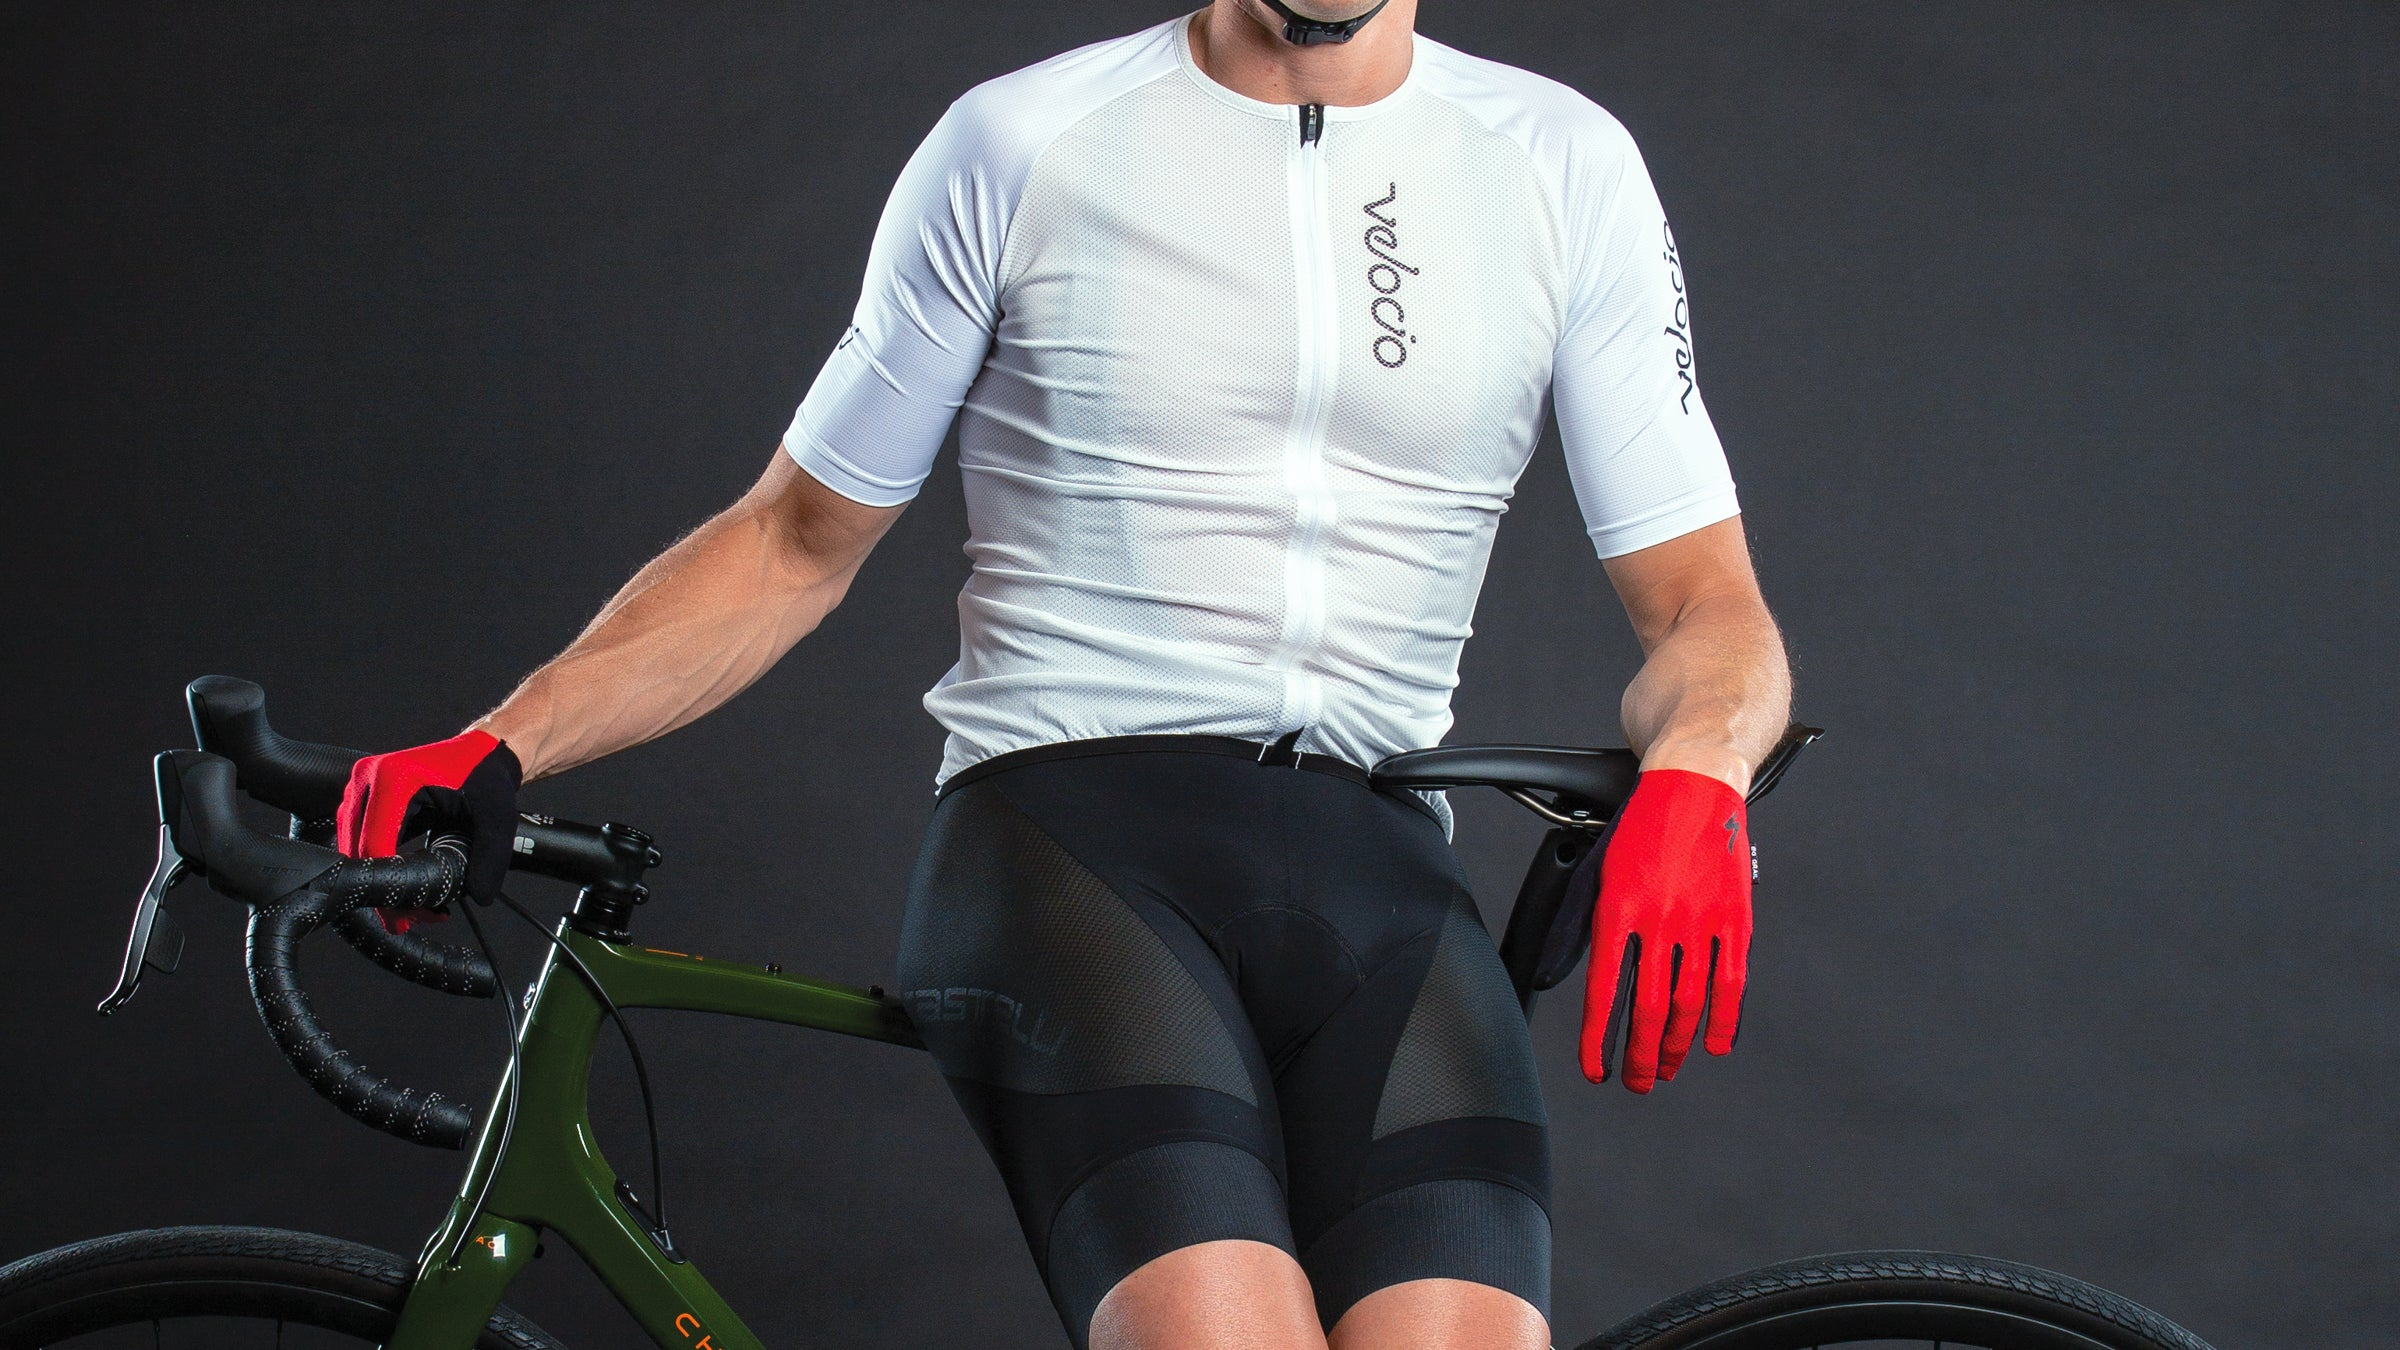 Detail of gravel cycling kit and gloves.